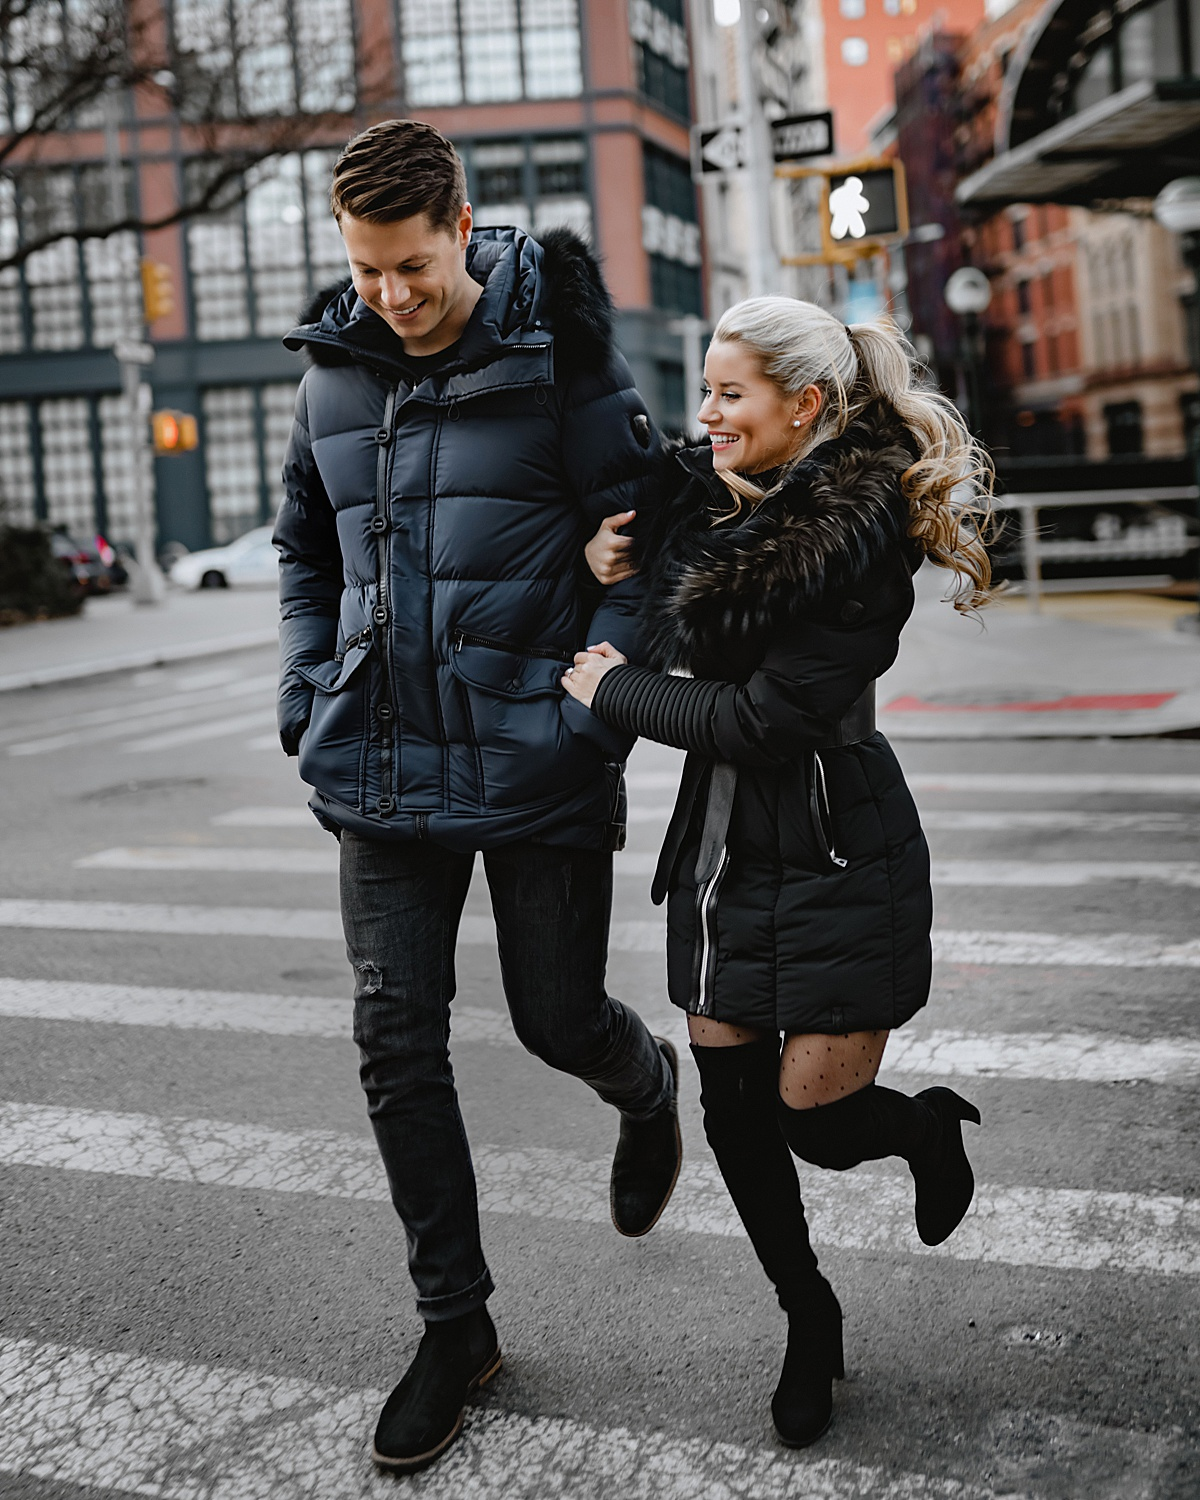 engagement pictures, engagement shoot, engaged 2020, engagement photos, olivia rink engagement, olivia rink engagement pictures, engagement outfit ideas, rudsak coats